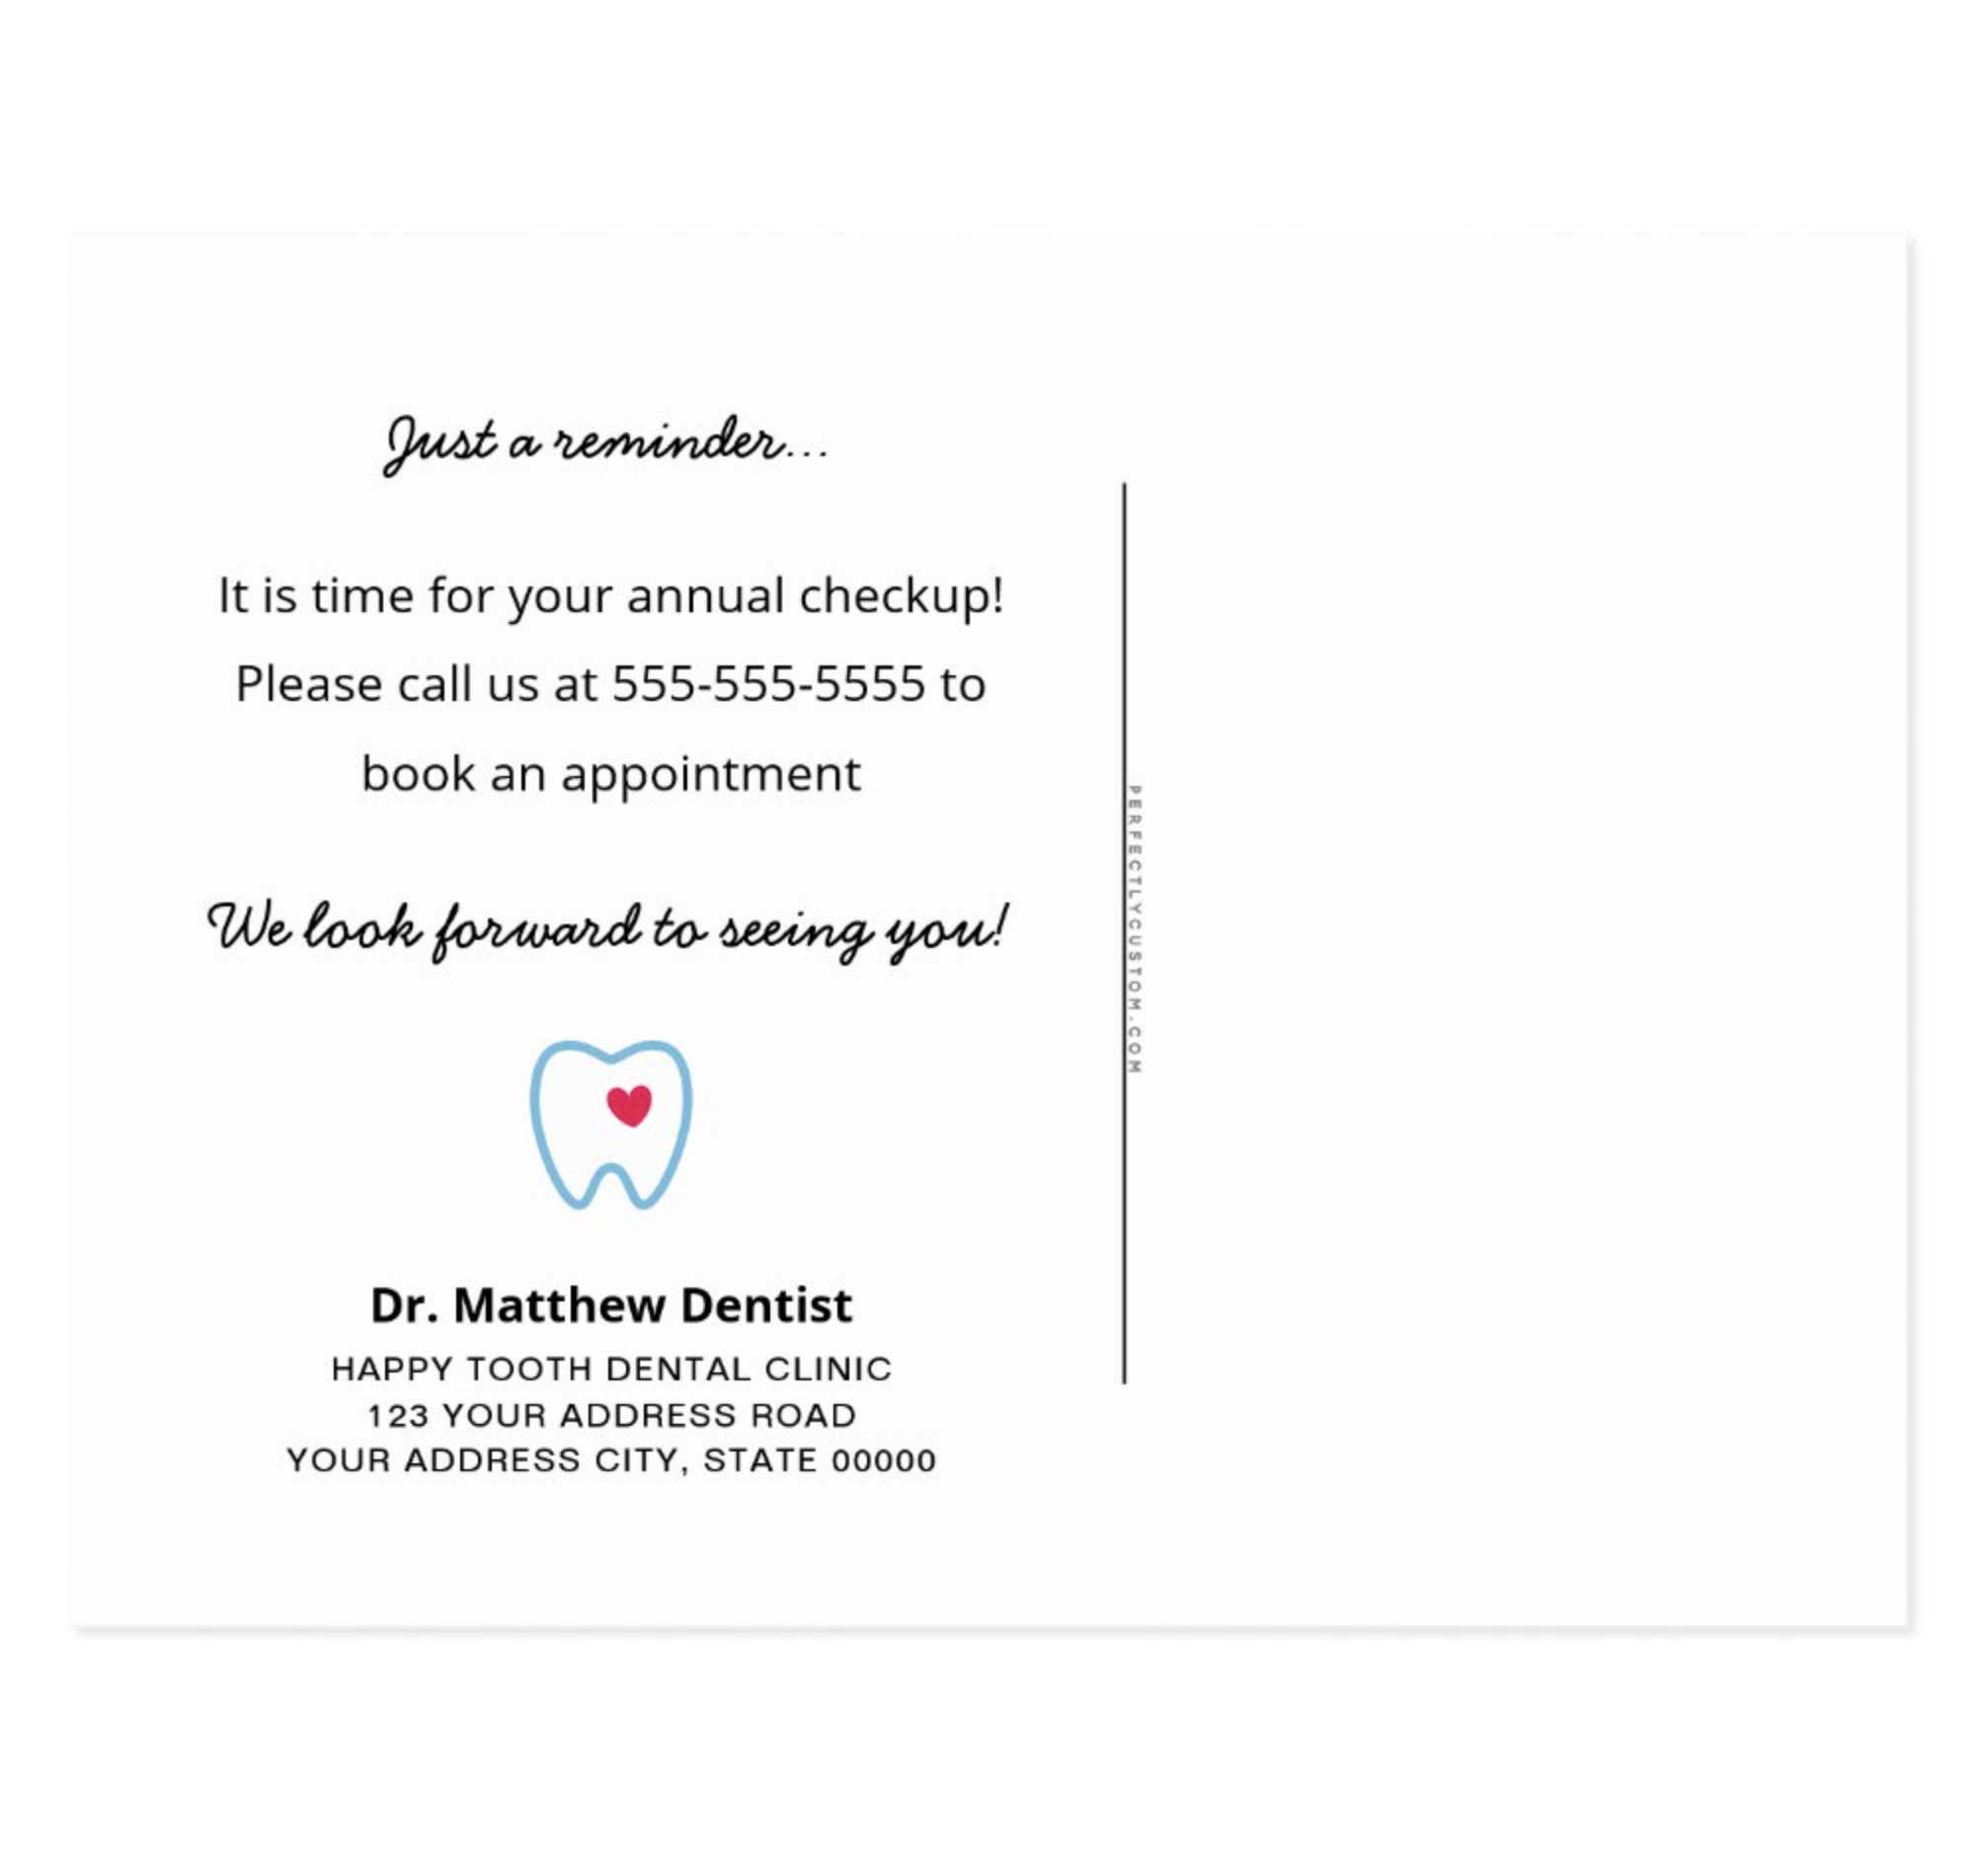 Dentist Appointment Reminder Tooth With Heart Blue Postcard Zazzle Com Dentist Dentist Appointment Reminder